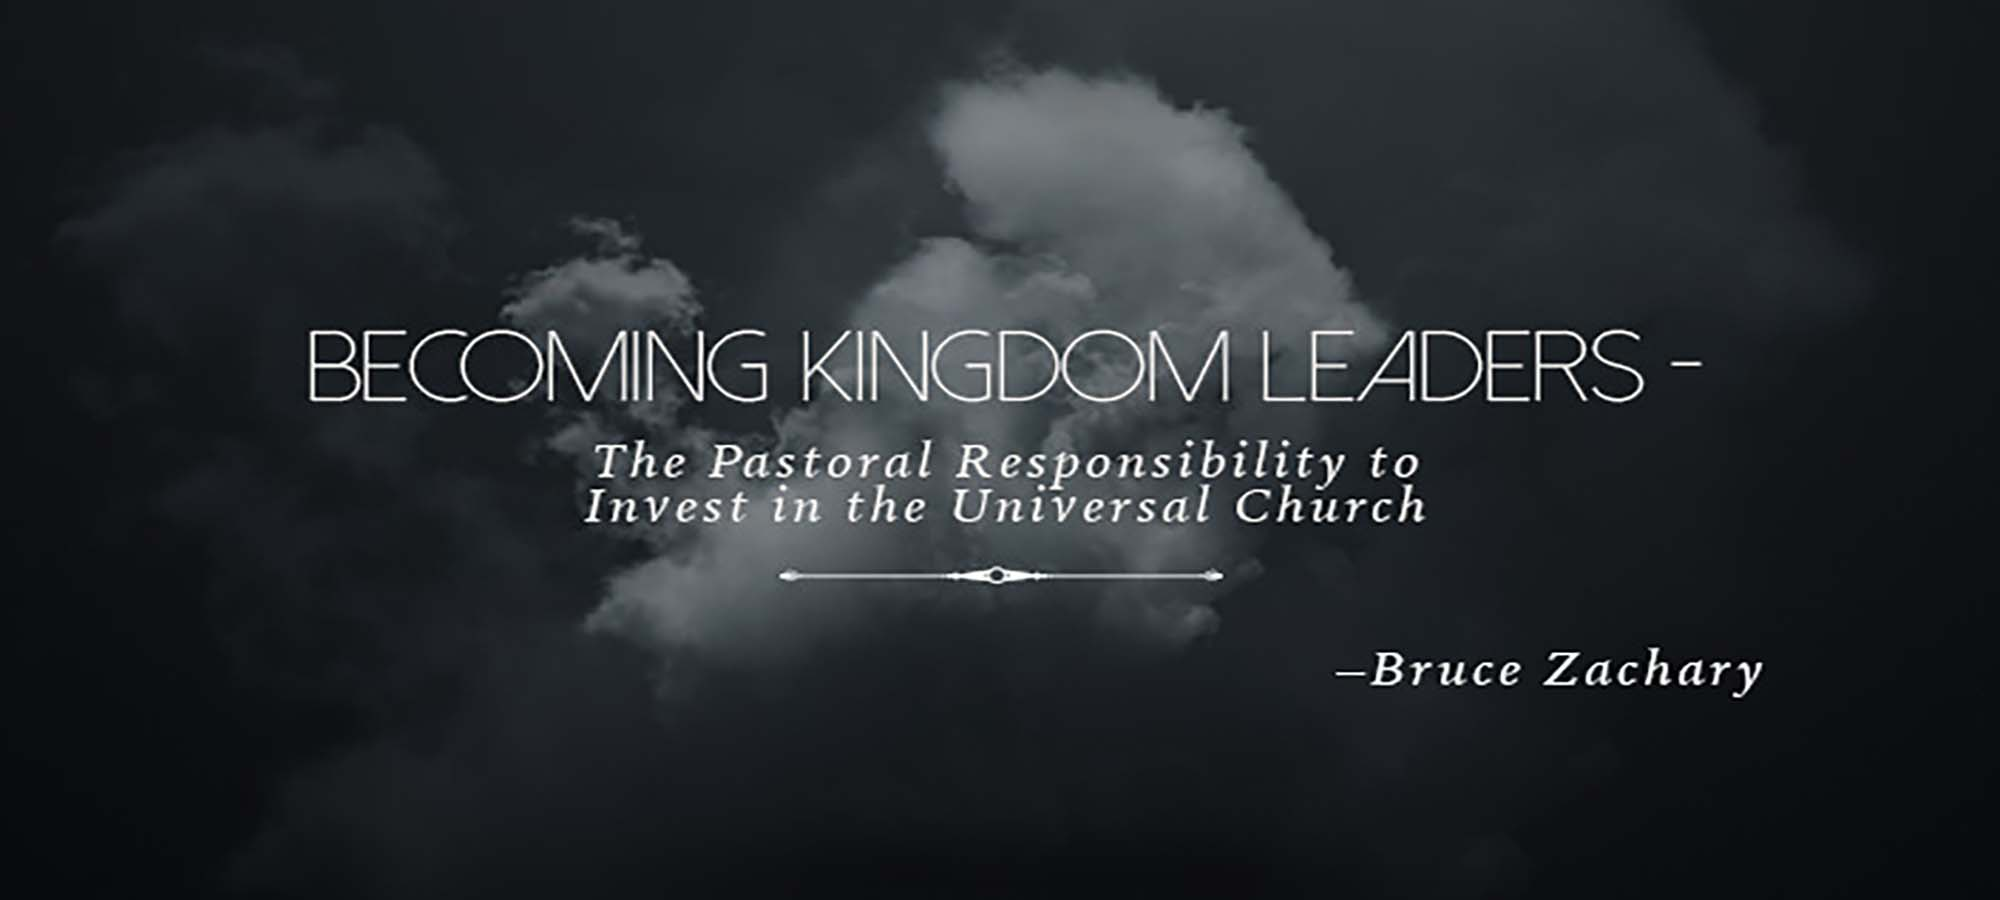 Becoming Kingdom Leaders - The Pastoral Responsibility to Invest in the Universal Church